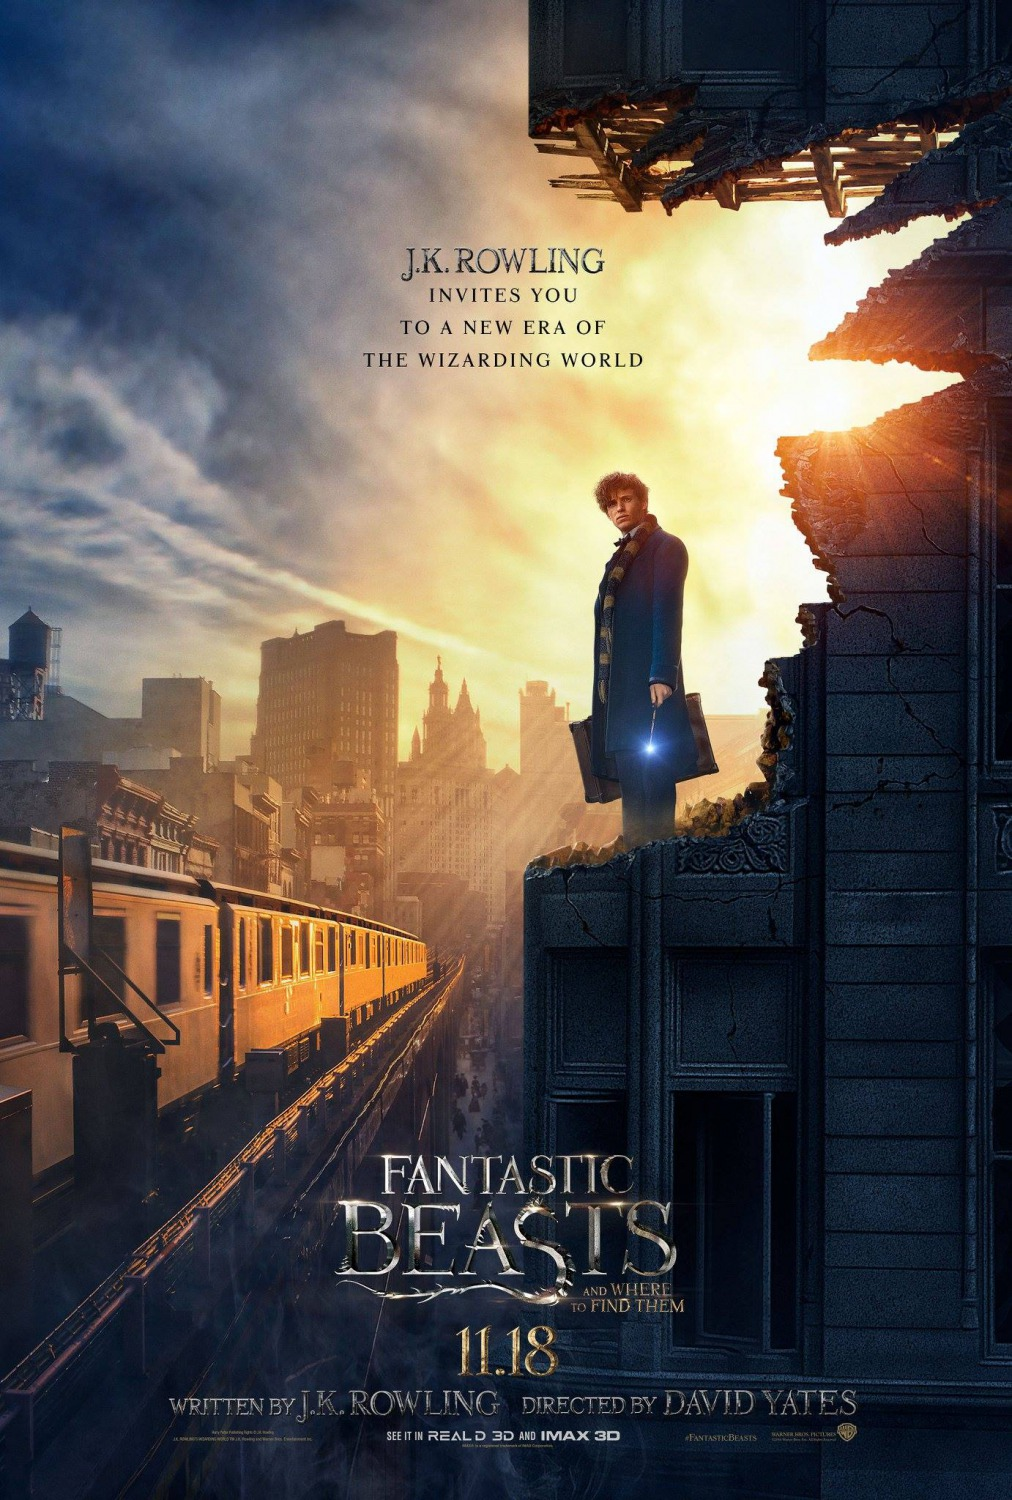 Watch Movie Bluray 2016 Online Fantastic Beasts And Where To Find Them